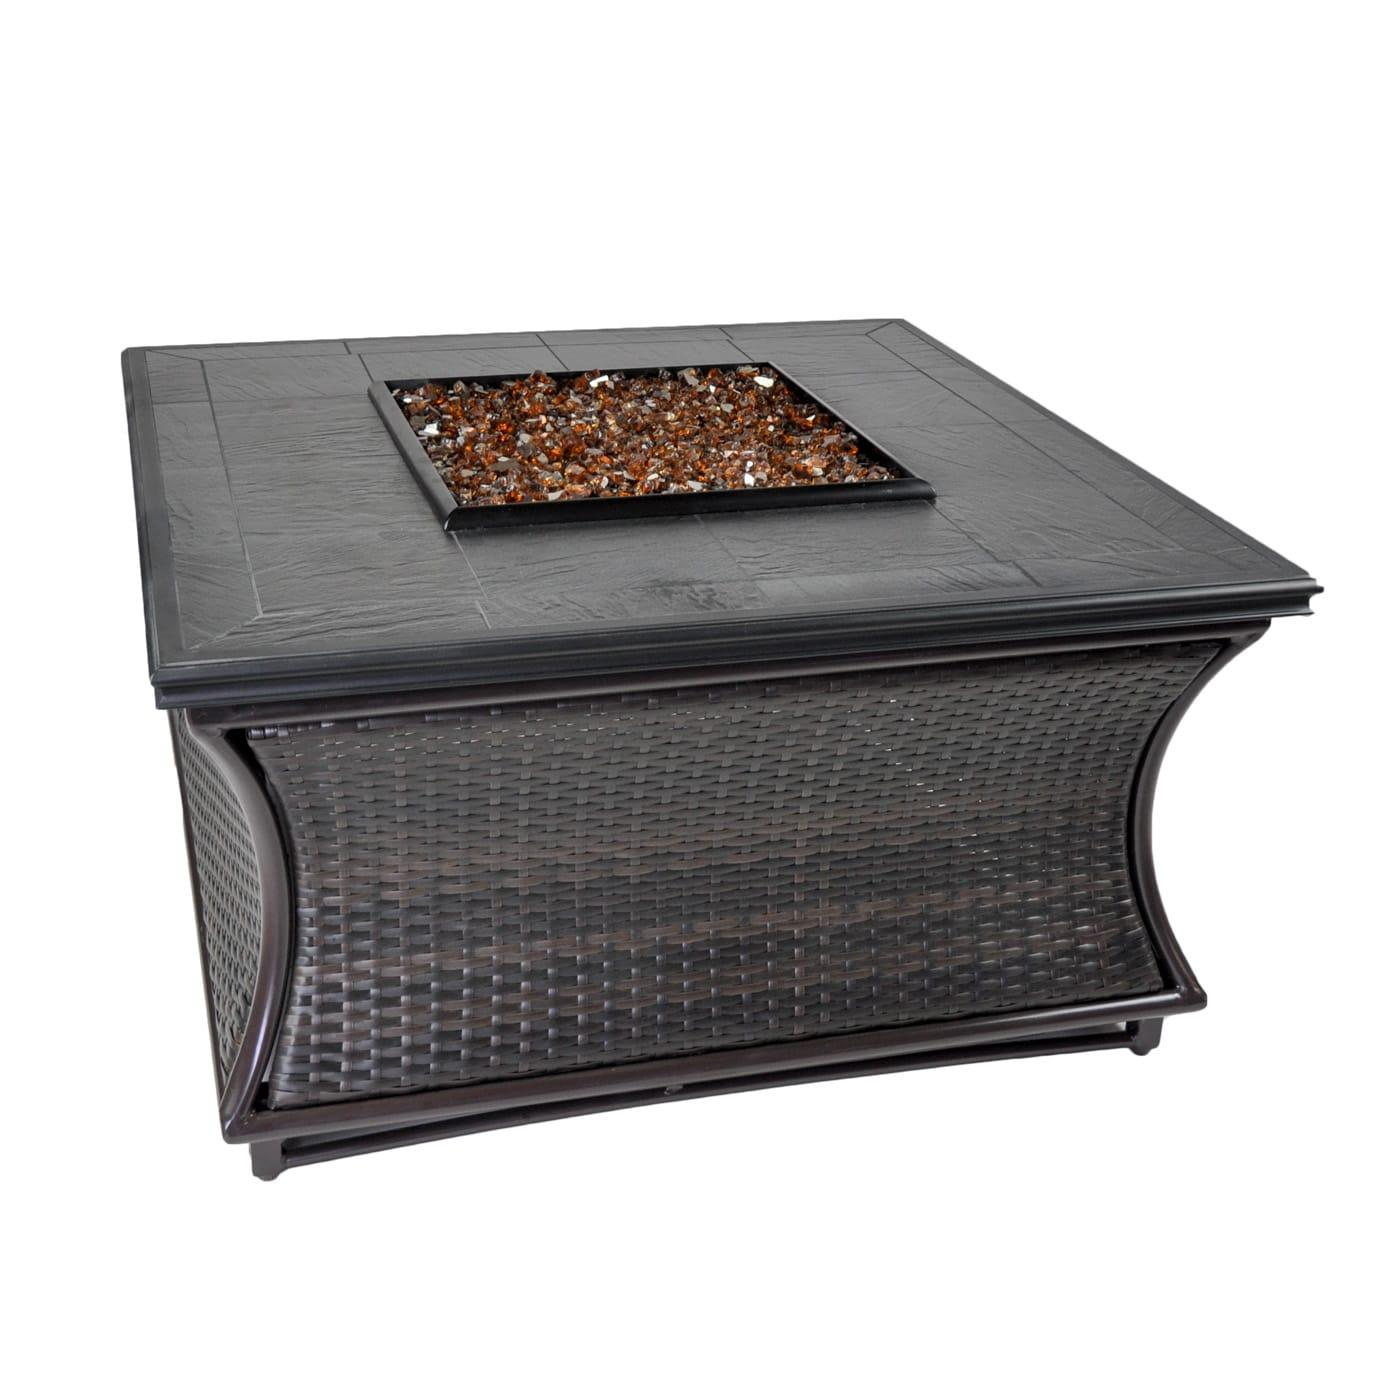 Tretco Spring Hill Wicker 44 inch Fire Pit Table-Spring Hill pic 1.jpg